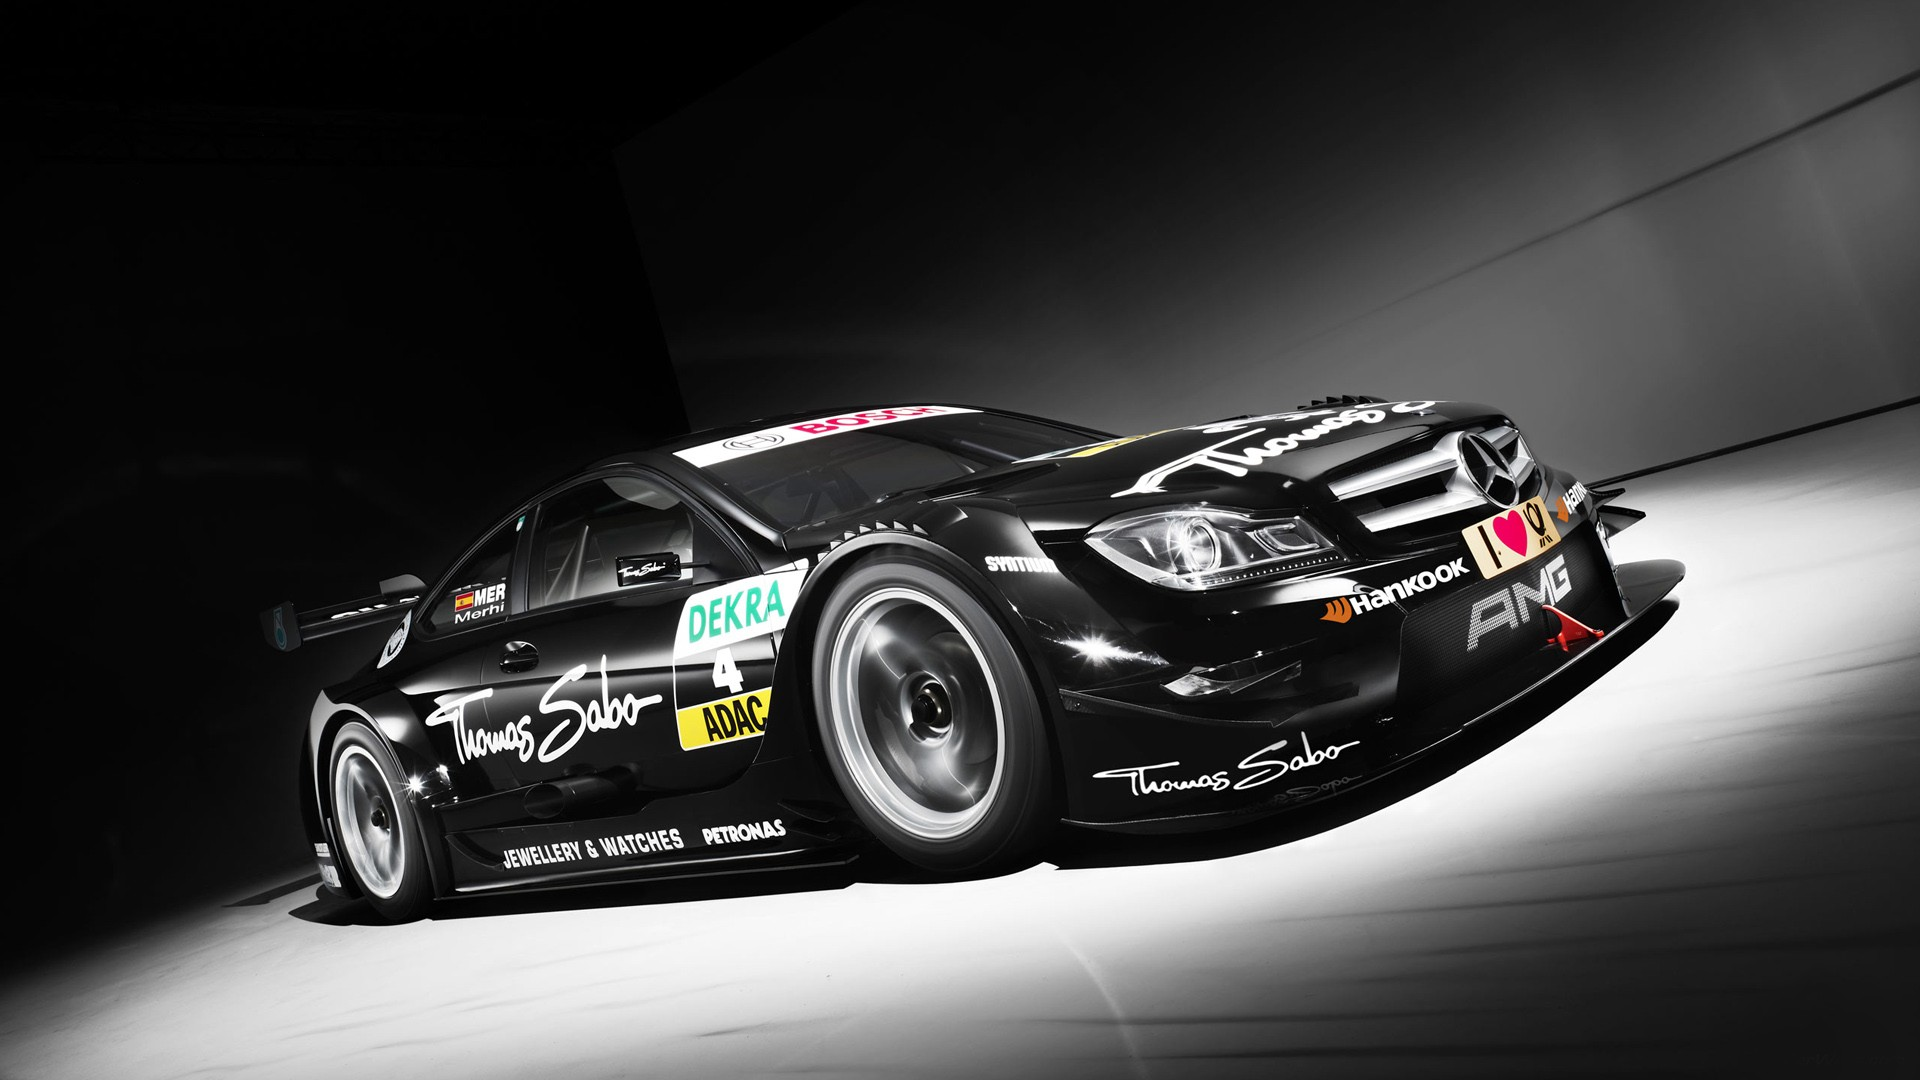 3d Wallpapers For Nokia E63 2013 Mercedes Amg C Coupe Dtm Wallpaper In 1920x1080